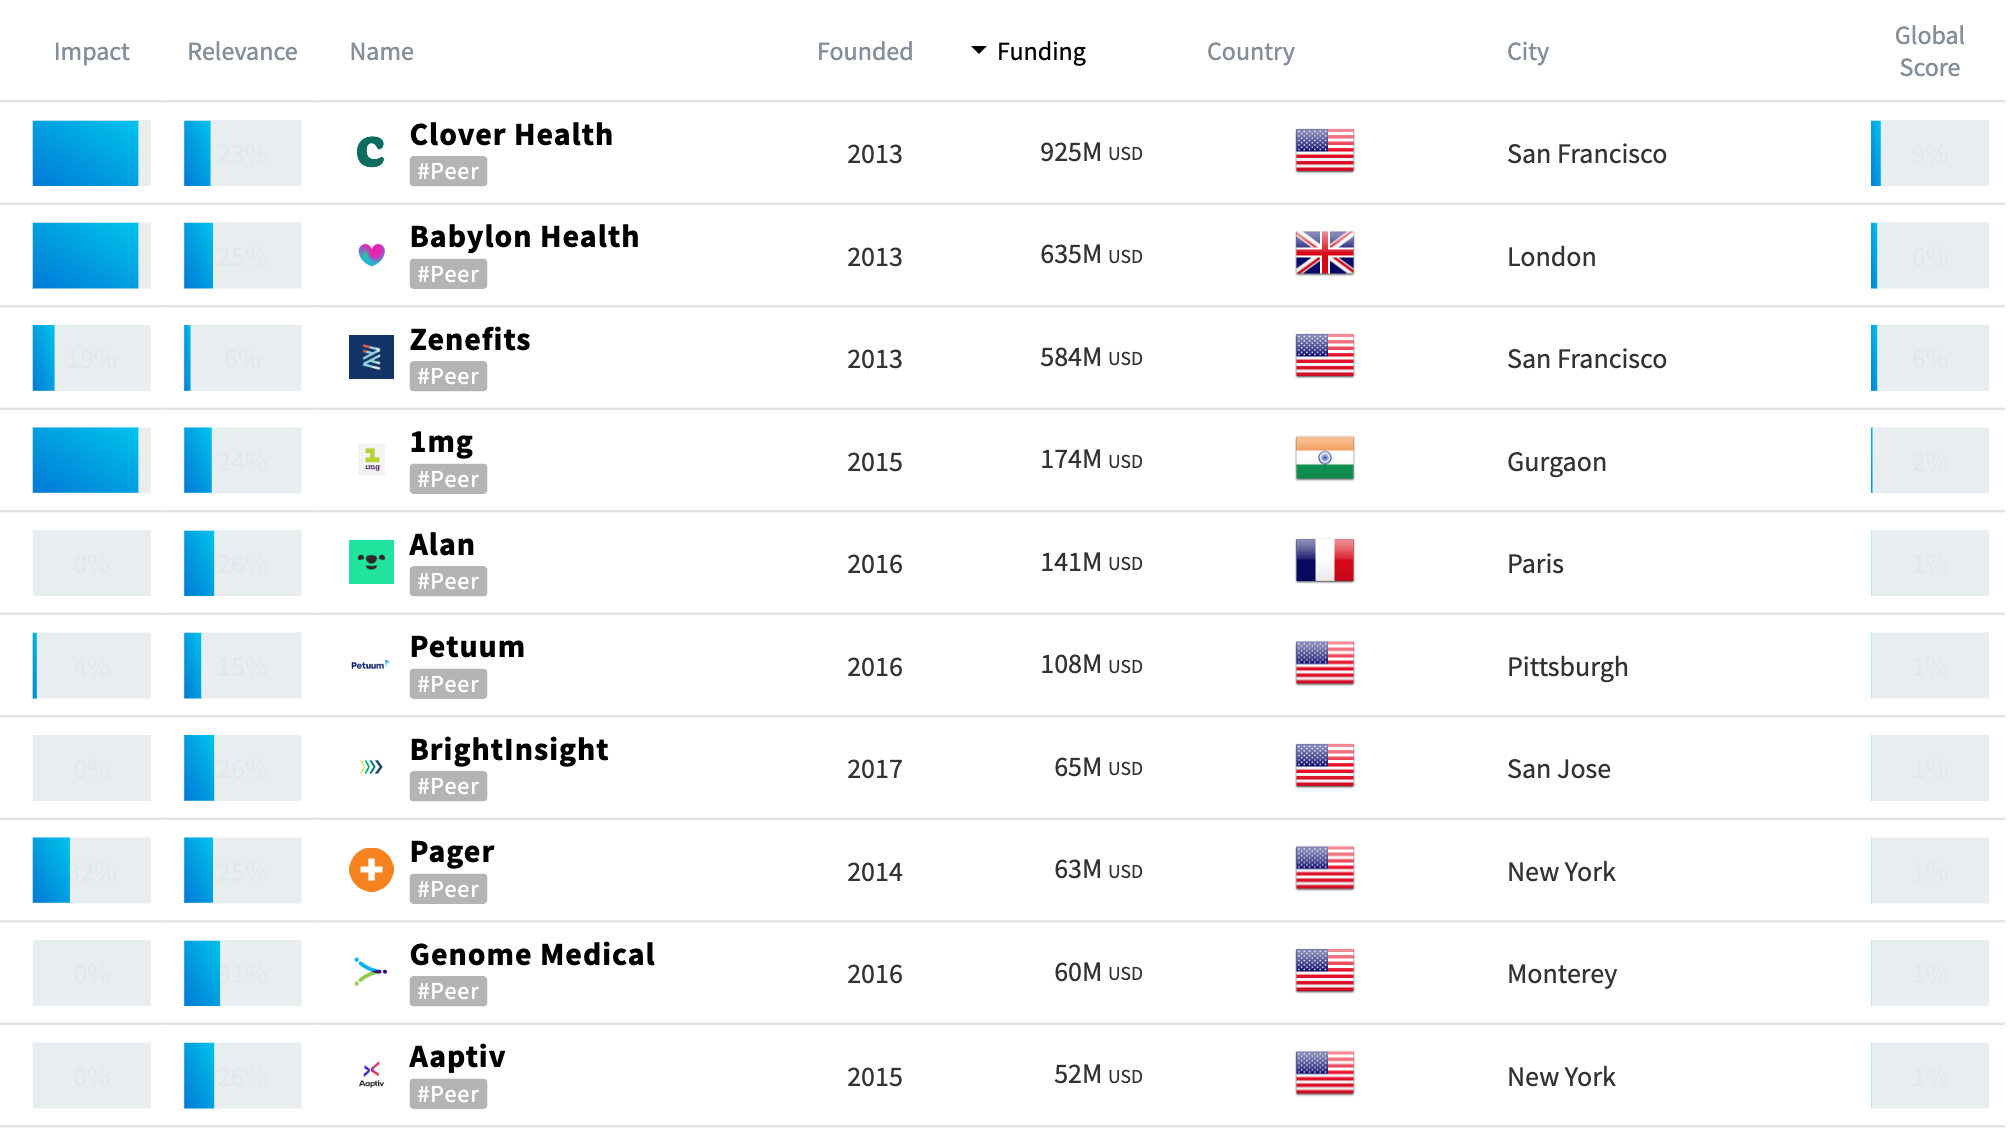 Top 10 Startups for Digital Health